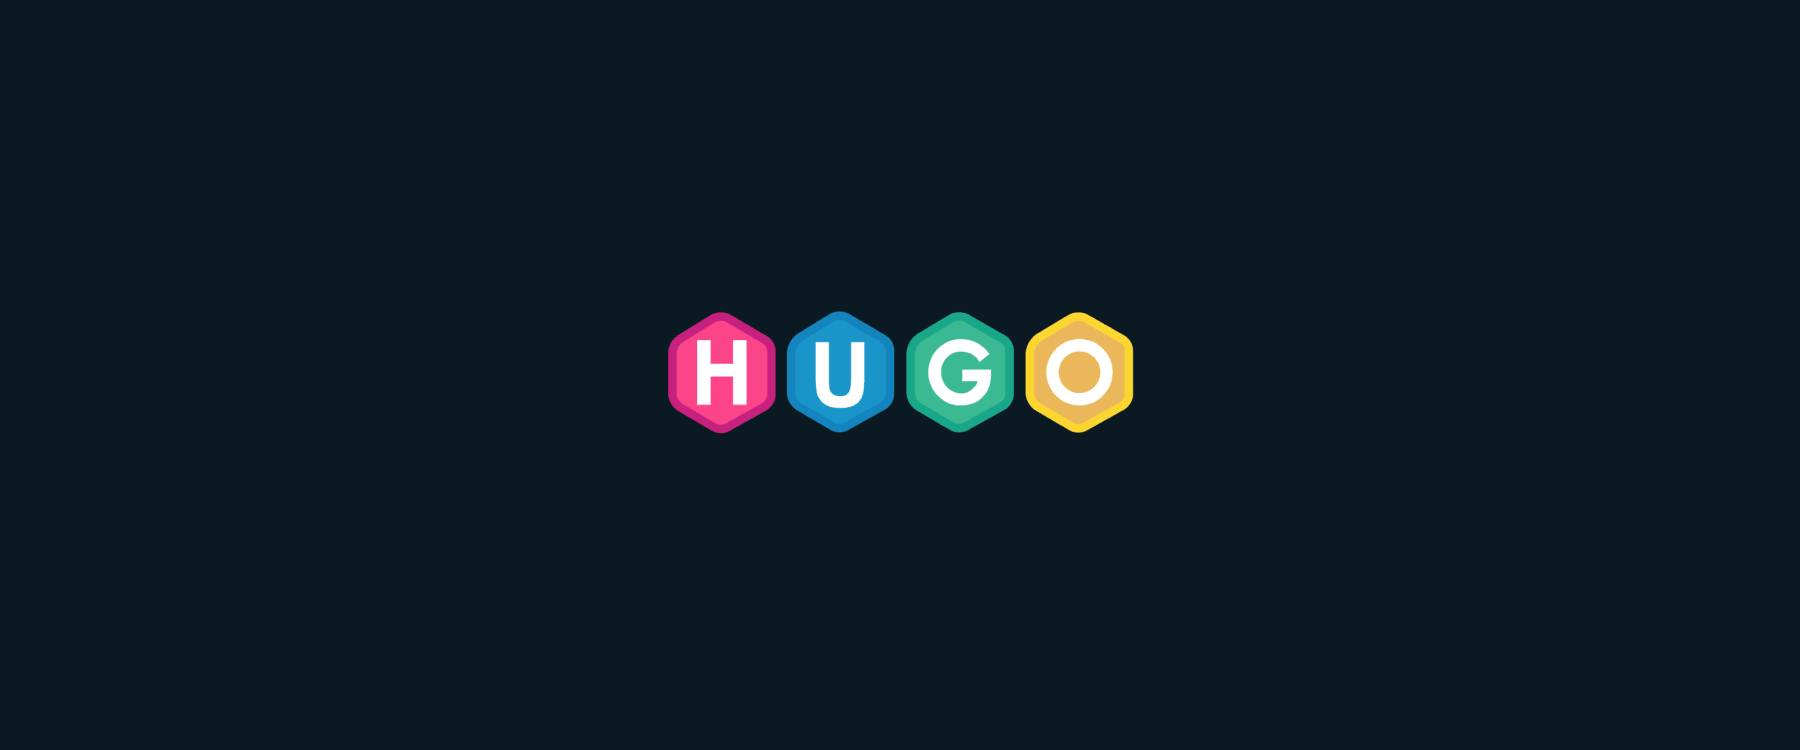 image from New blog made with Hugo